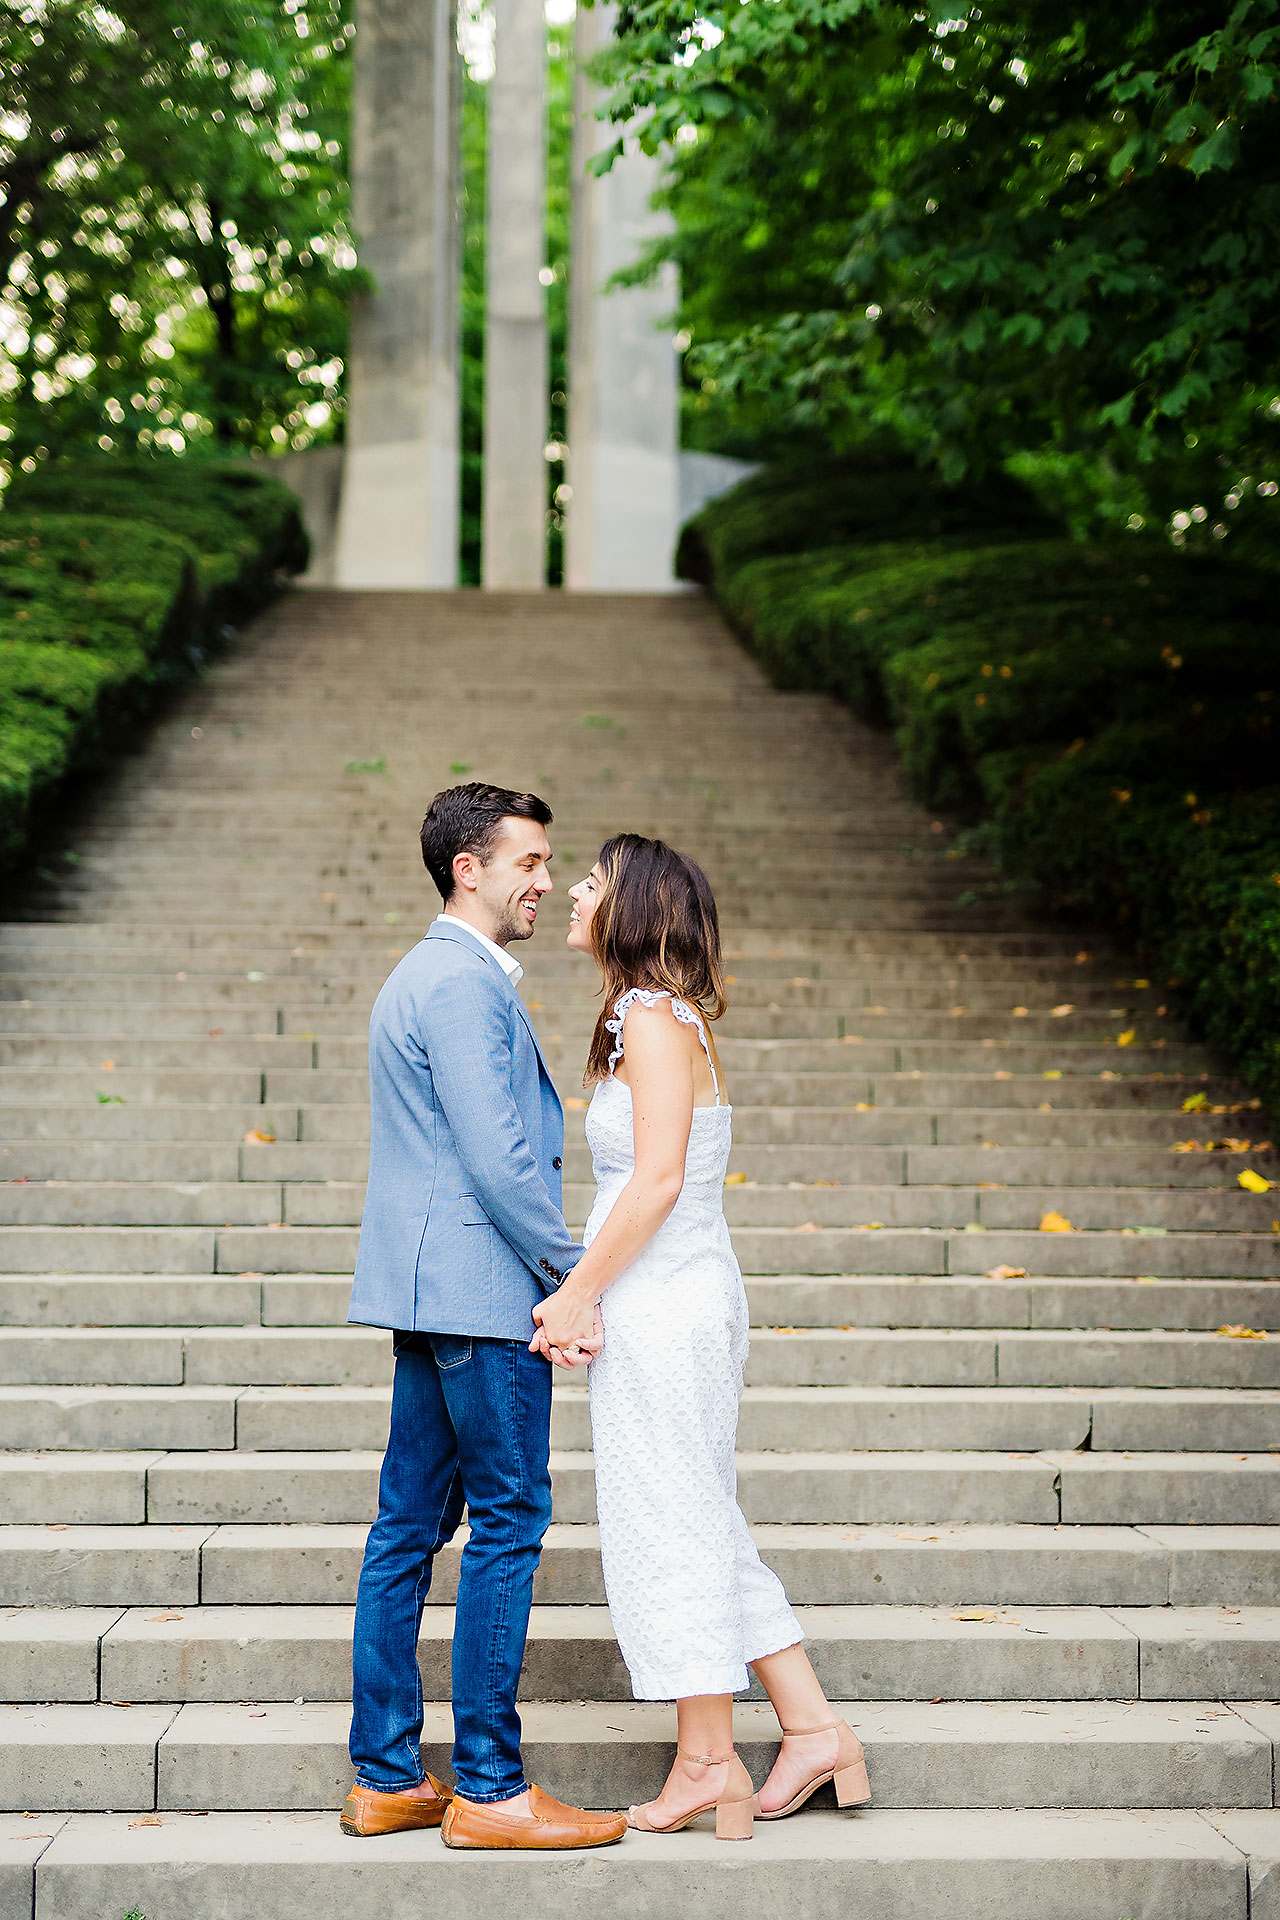 Kate Sawyer Holcomb Gardens Engagement Session 123